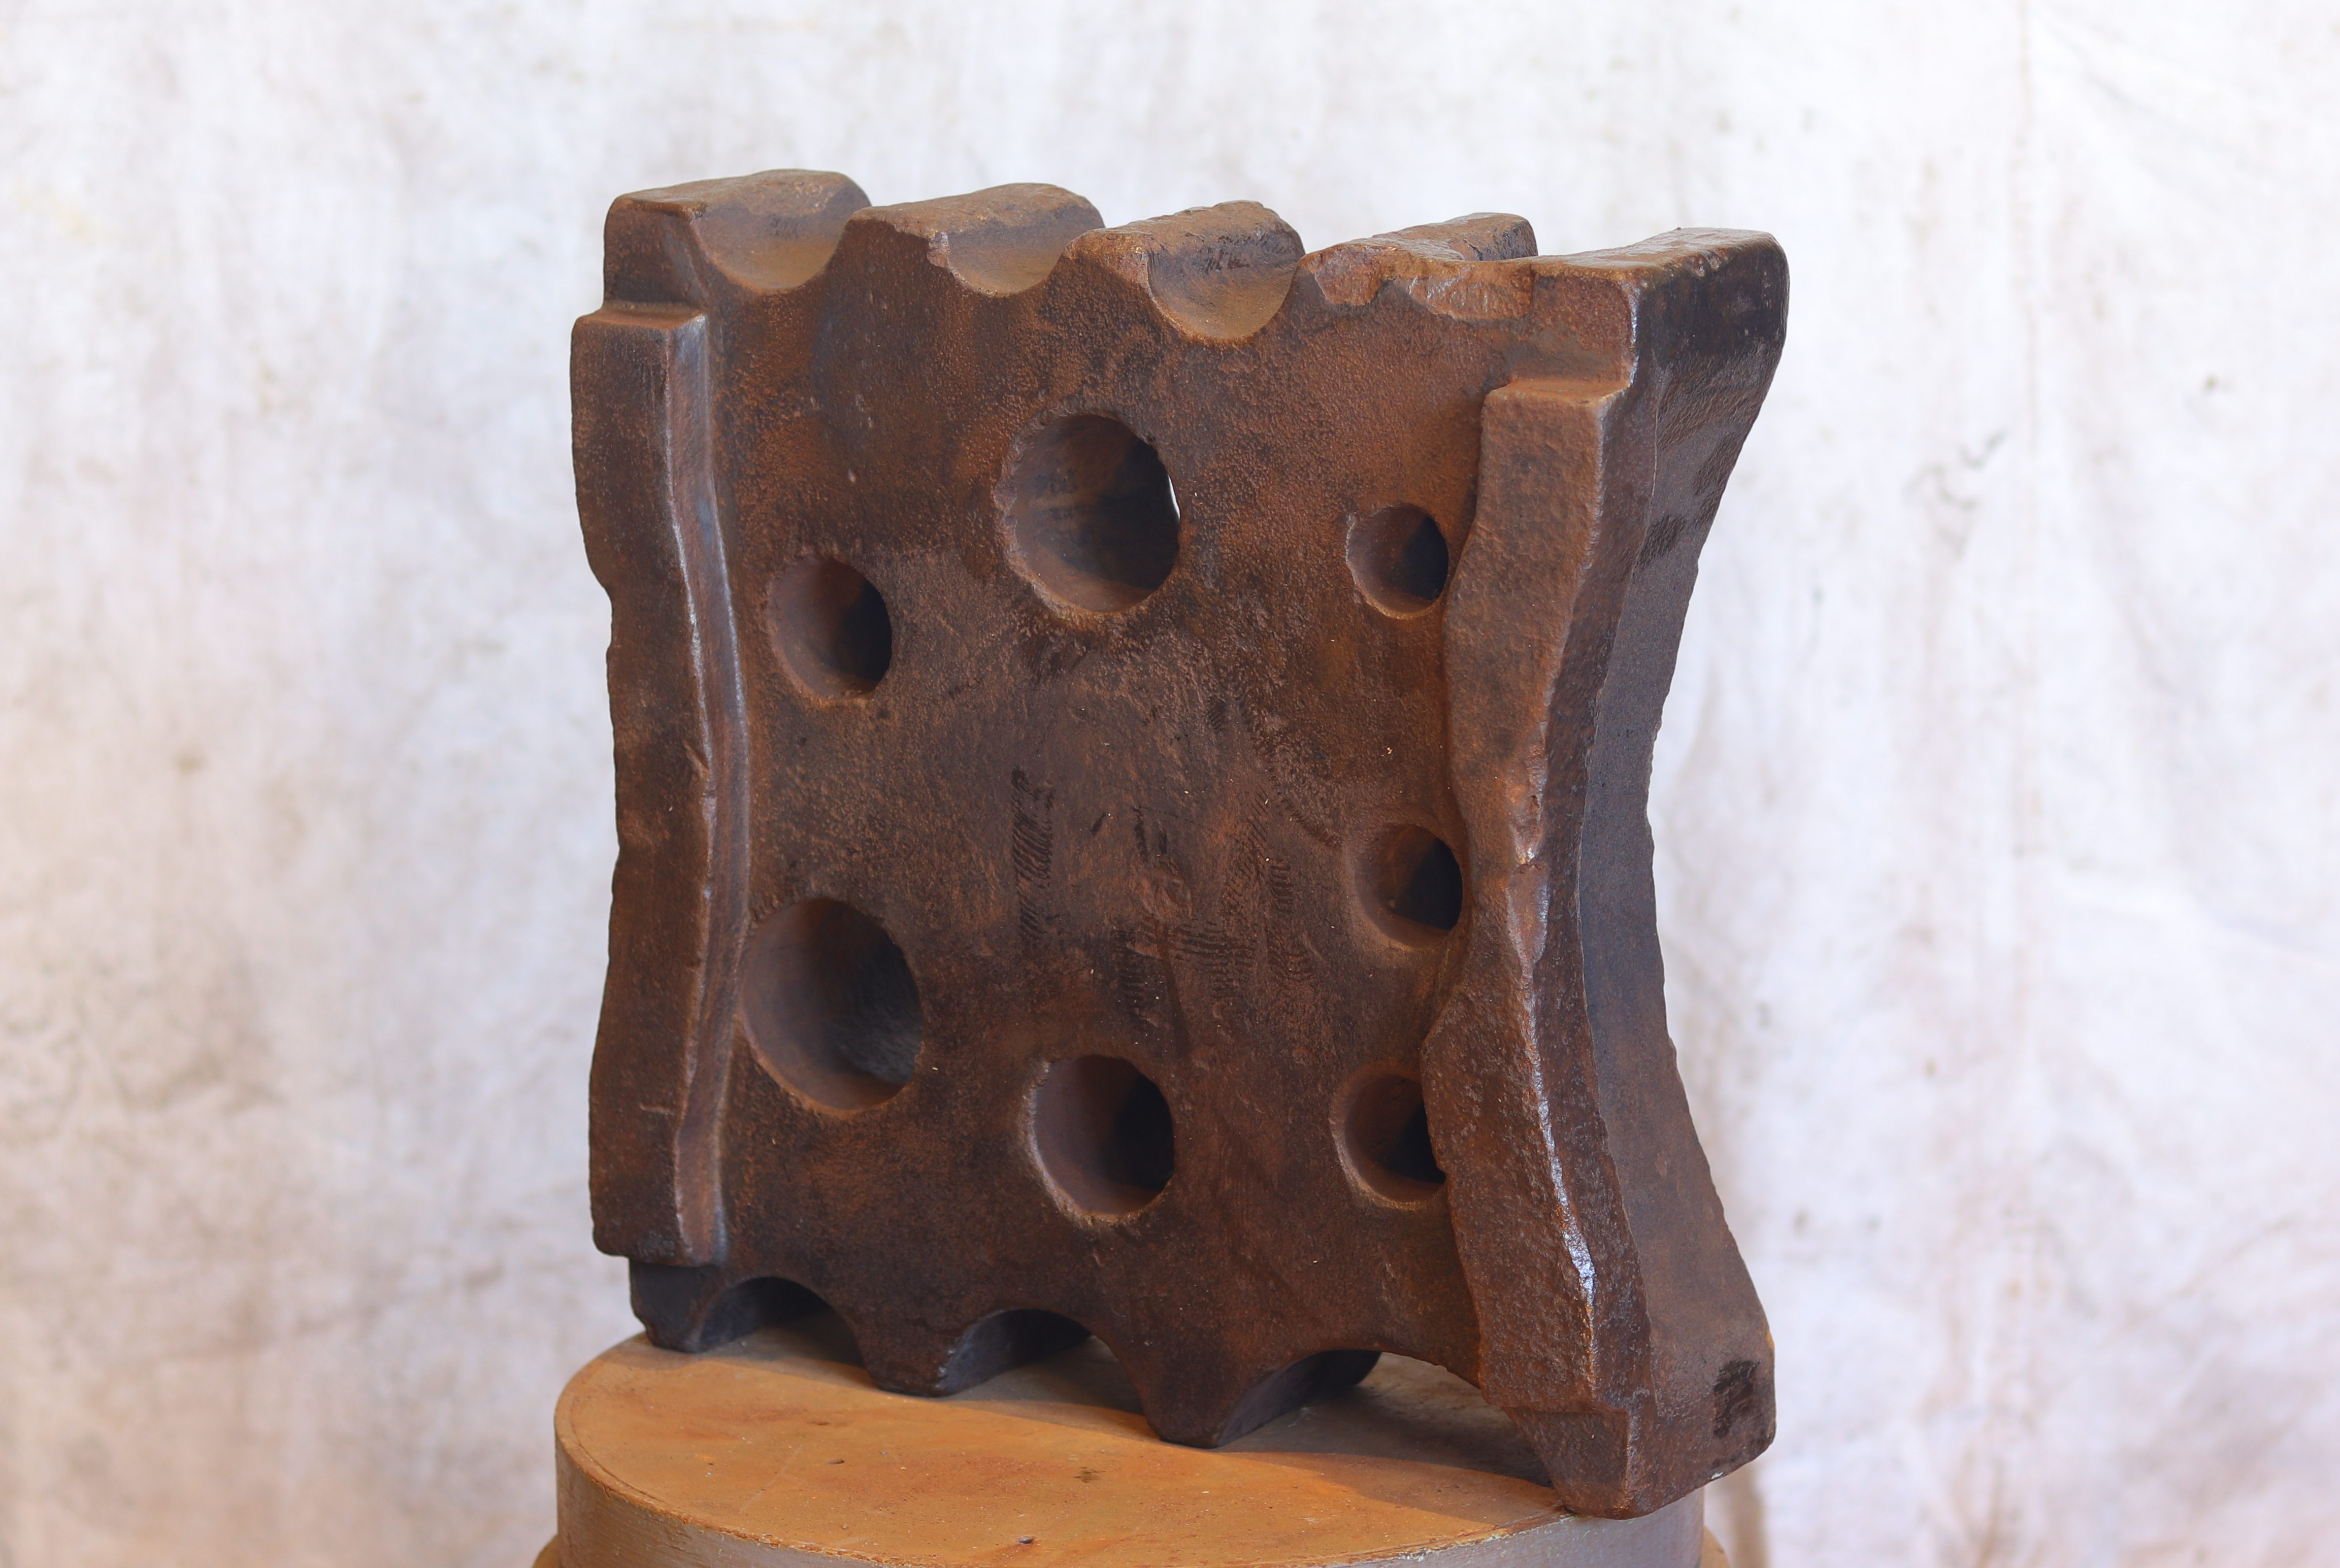 264 lb wagon tire swage block anvil for sale, mid 19th century, curves for bending wagon tires, unusual military? shapes.